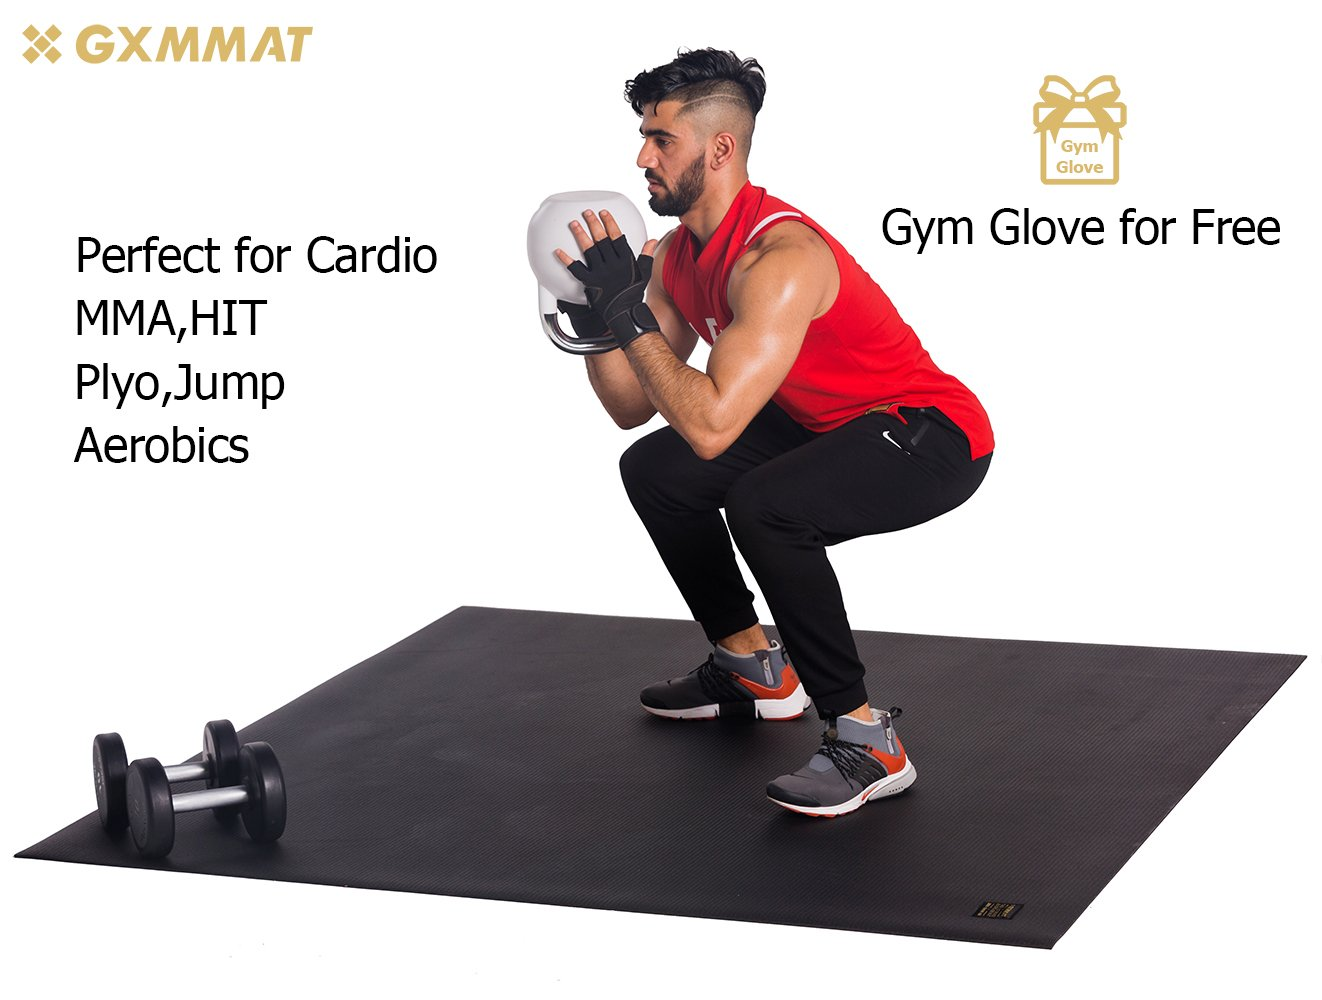 Gxmmat Large Exercise Mat 6'x6'x7mm for Partner Cadio Workout and Gym Equipment, Extra Thick Gymnastics Mats Non-Slip Anti-Tear for Home Gym Flooring - Plyo,HIT, Jump,Fitness Mat by Gxmmat (Image #2)